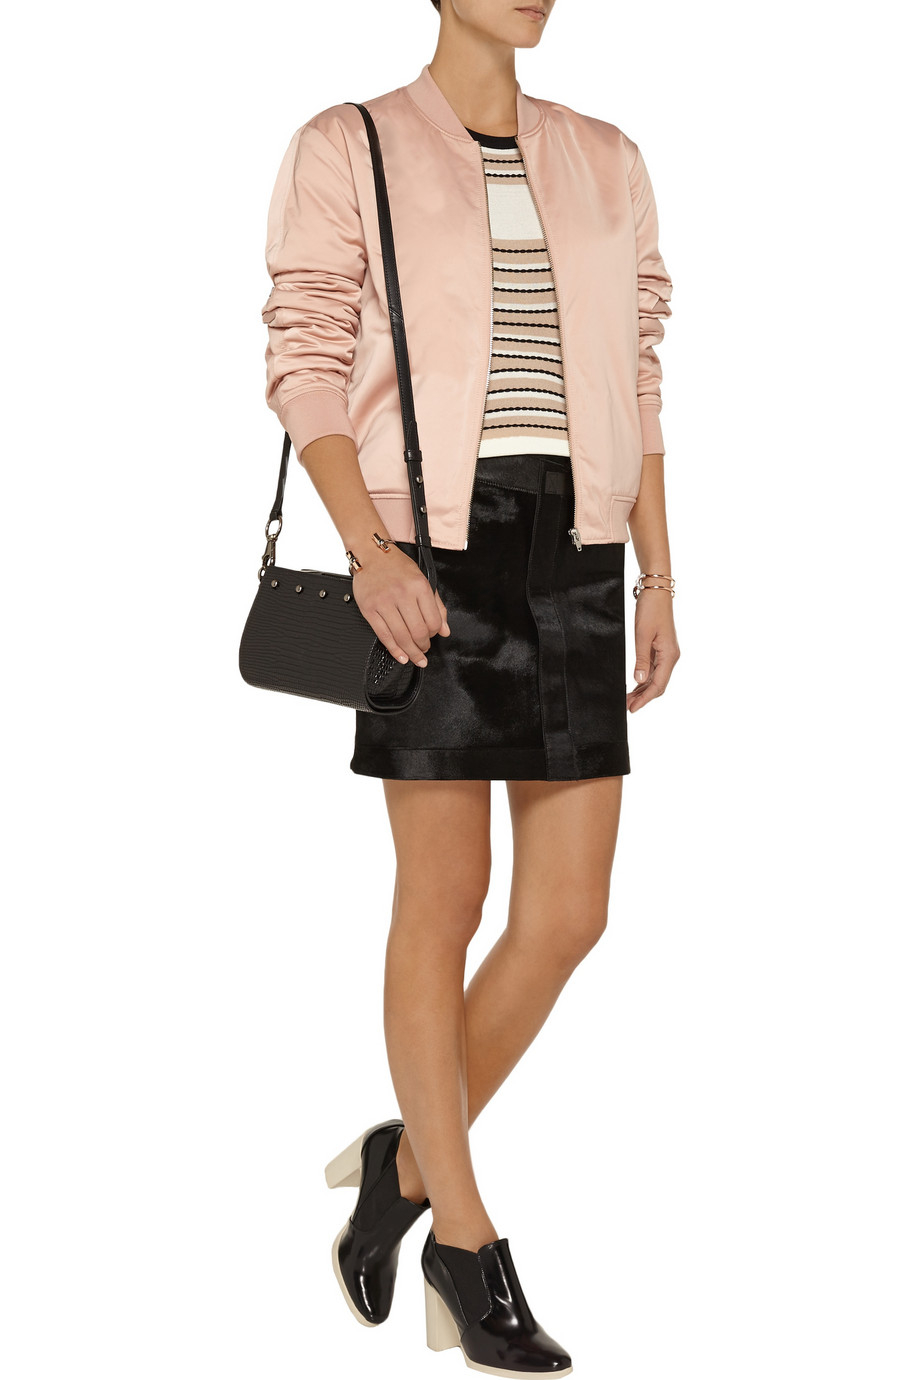 038888ead T By Alexander Wang Pink Padded Satin Bomber Jacket